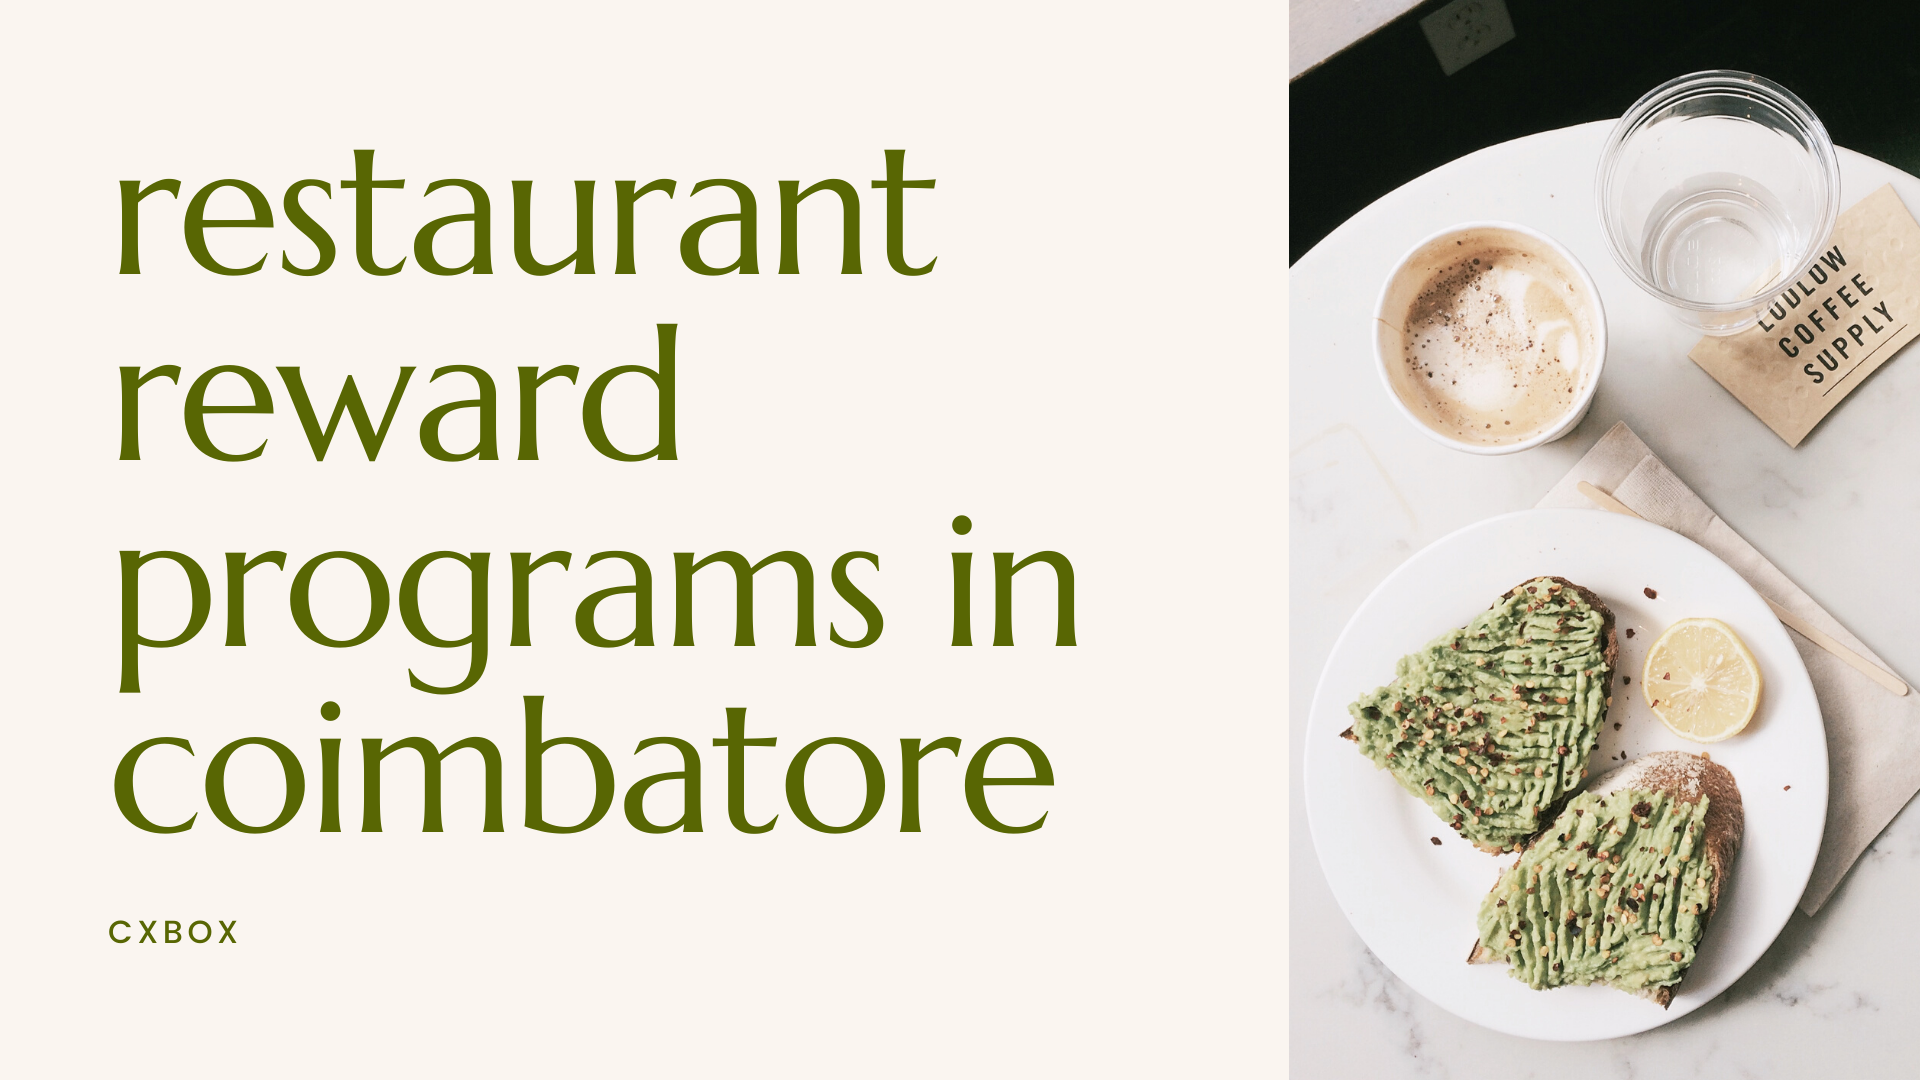 restaurant reward programs in coimbatore